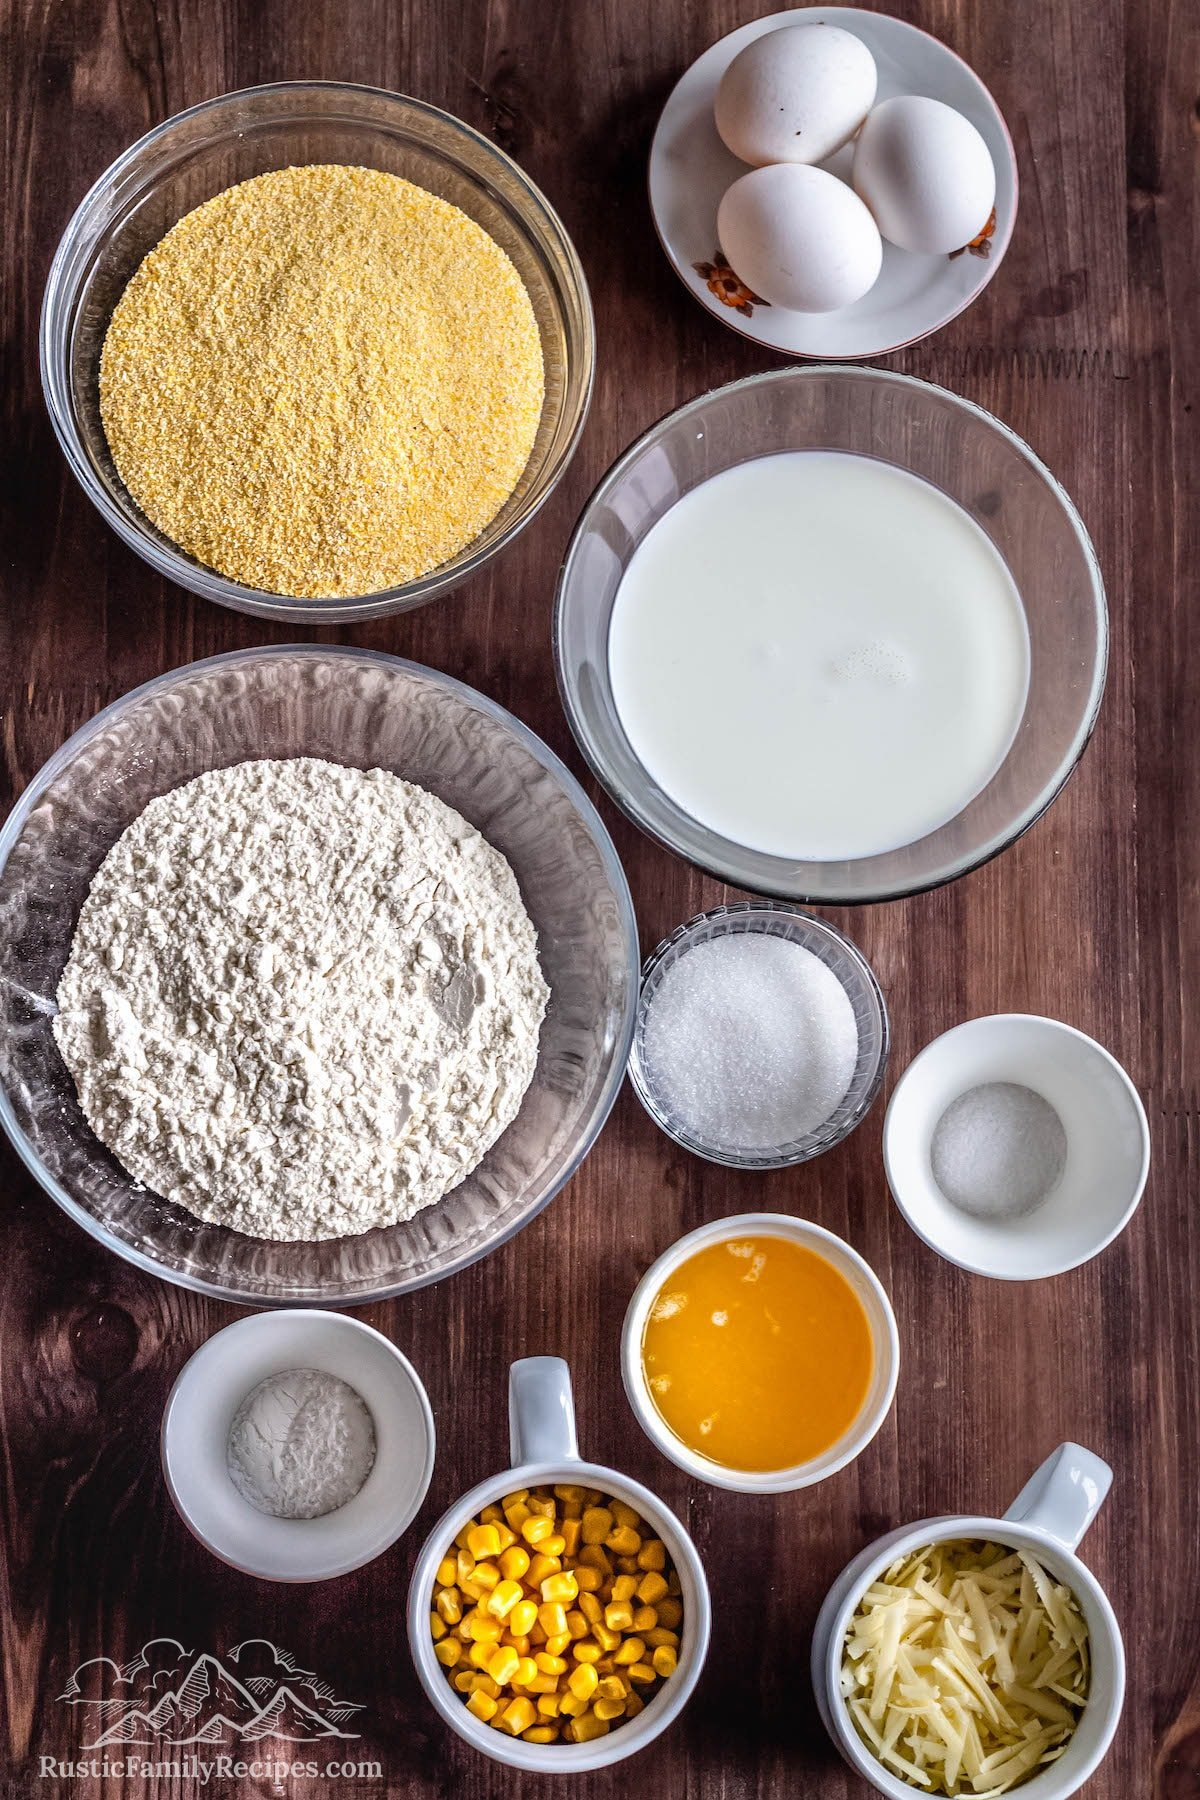 The ingredients needed to make Easy Cheddar Cornbread. This includes: Butter, Eggs, Half-and-Half or Whole Milk, Fine Yellow Cornmeal, Unbleached All-Purpose Flour, Salt, Baking Powder, Sugar, Fresh, Frozen and Thawed, or Canned Corn Kernels, and Freshly Grated Sharp Cheddar Cheese.